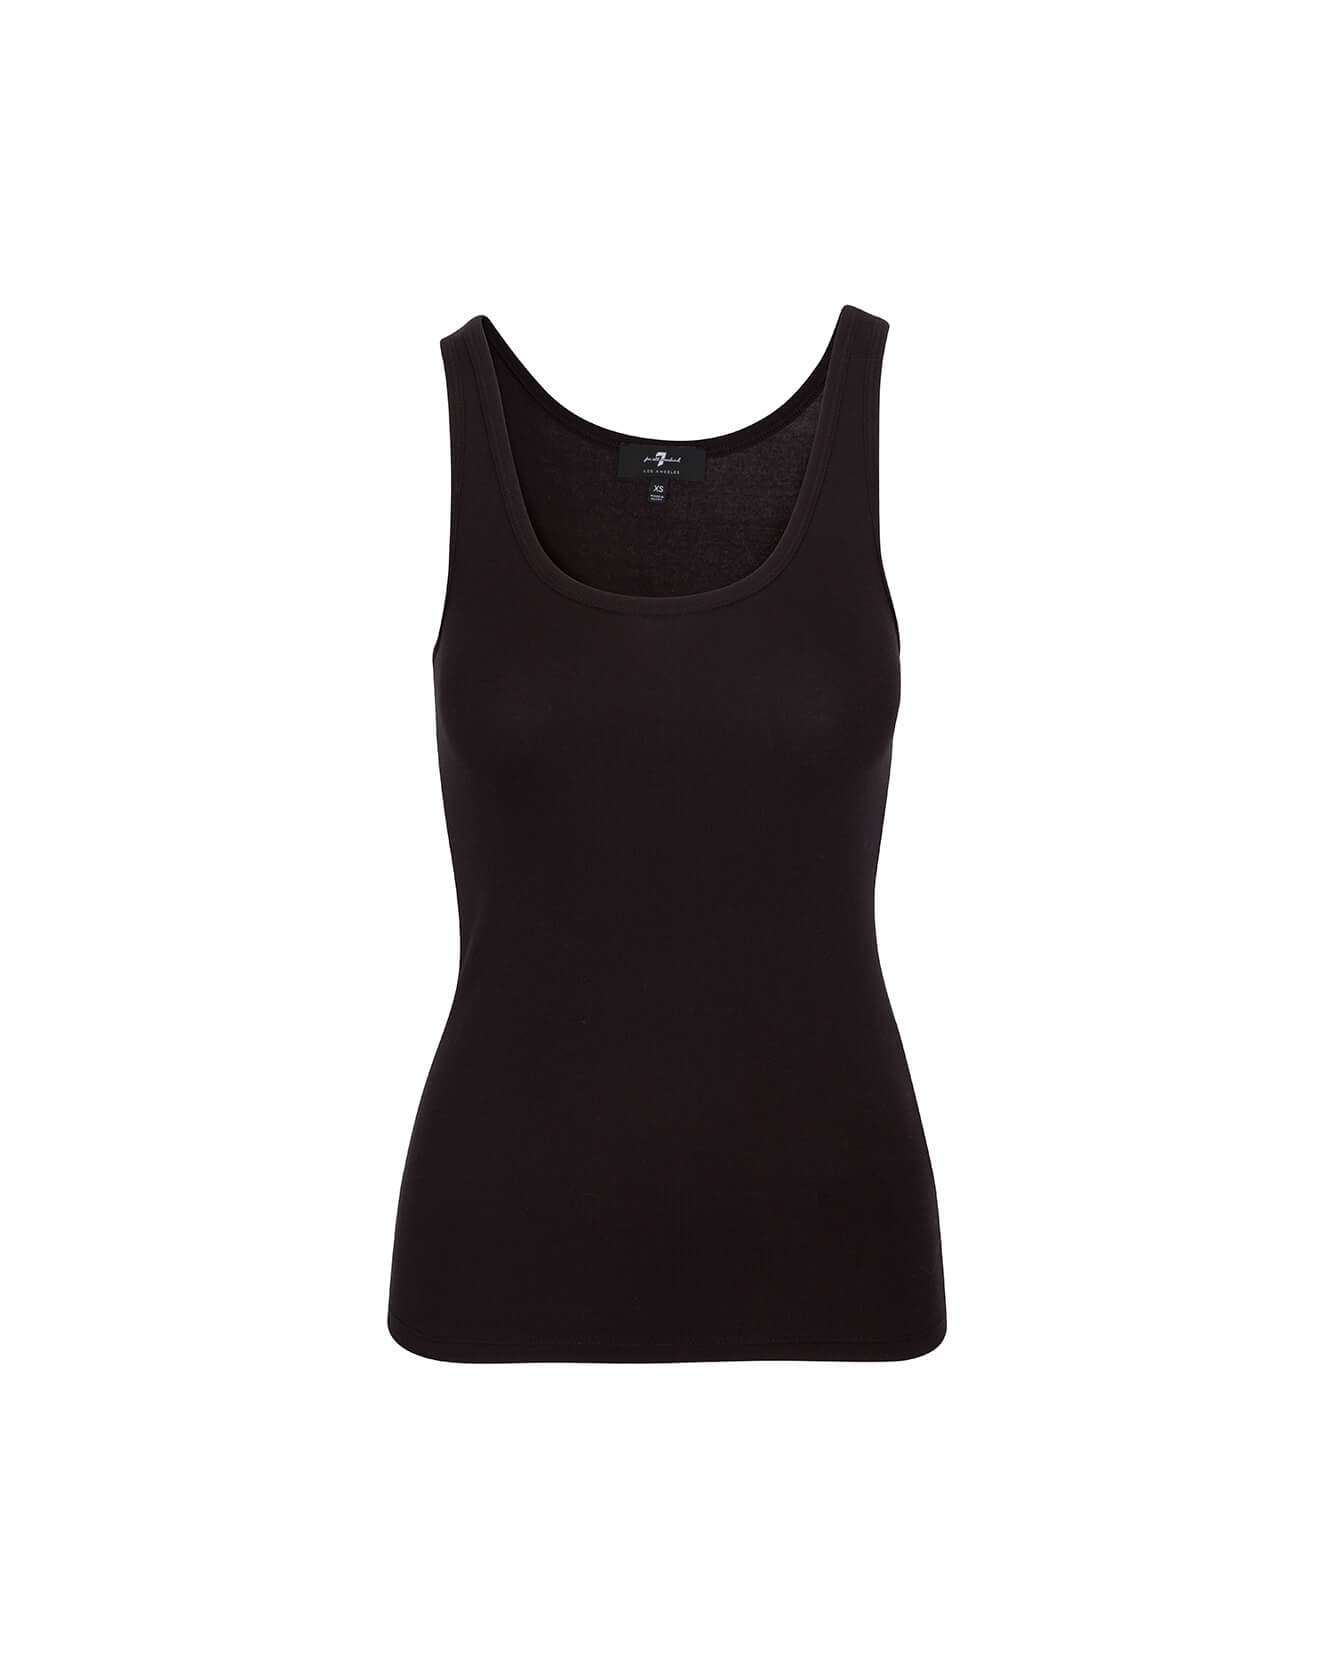 Image of Scoop Neck Tank in Black